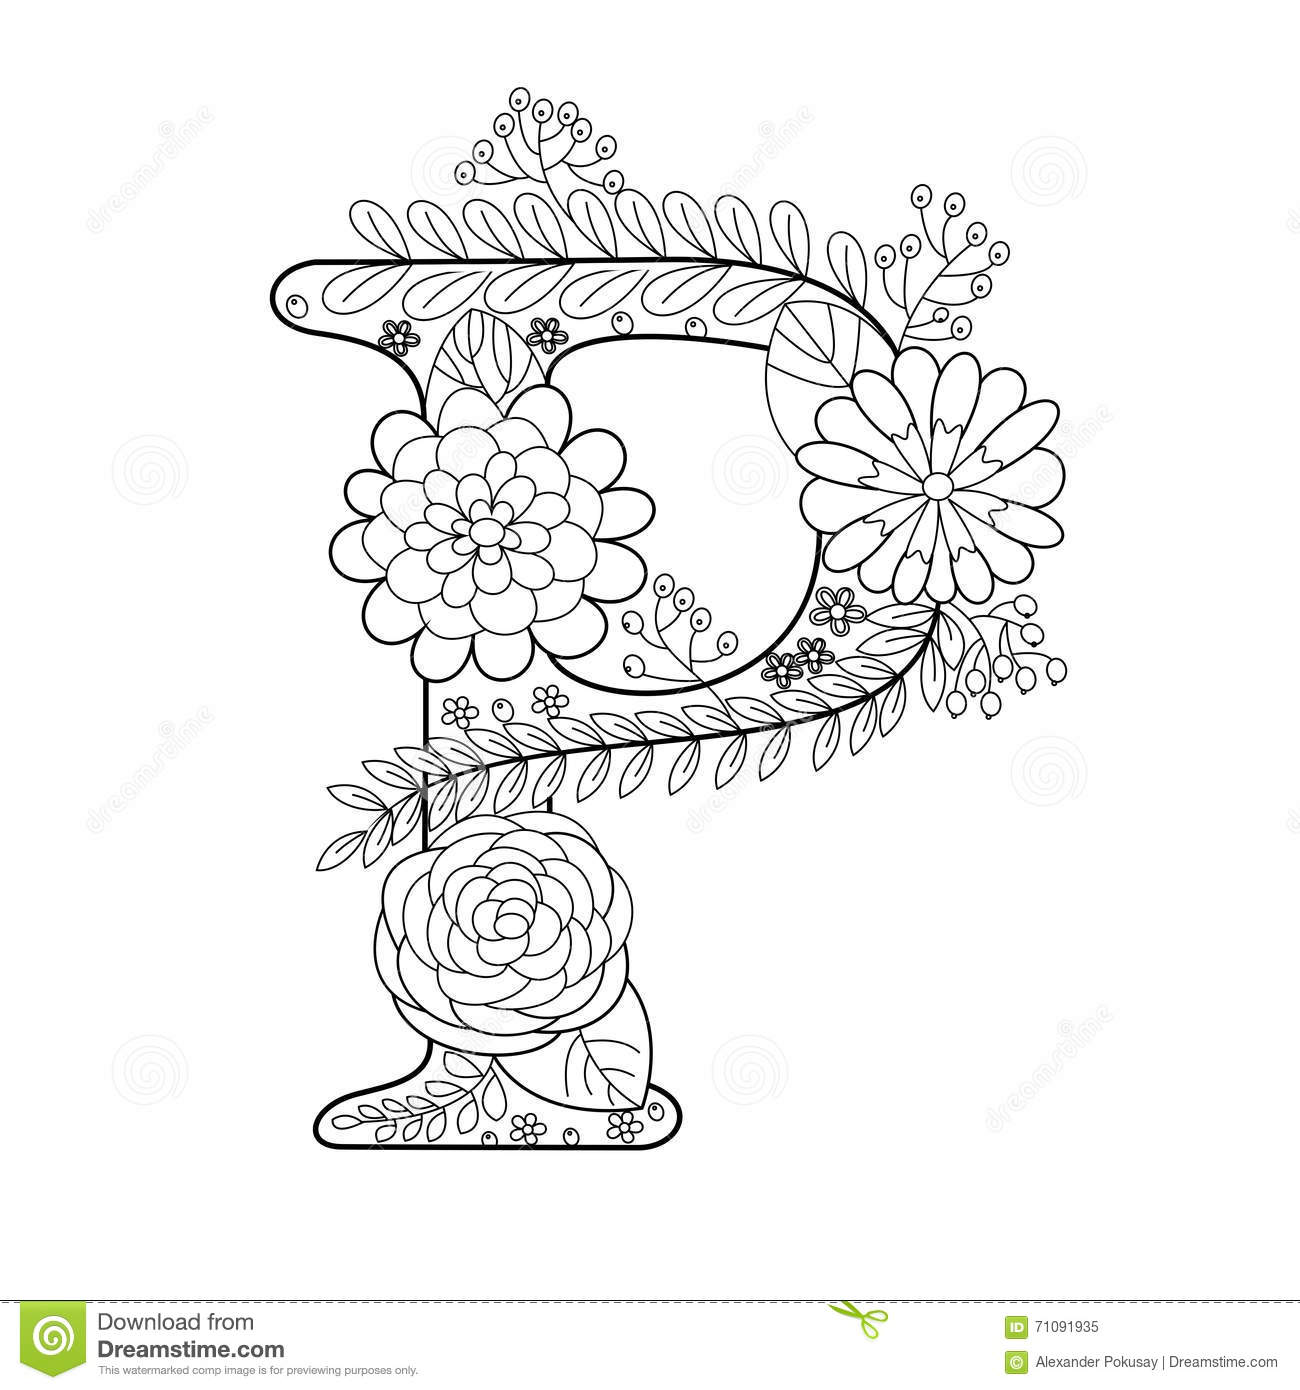 Letter P Coloring Pages For Adults